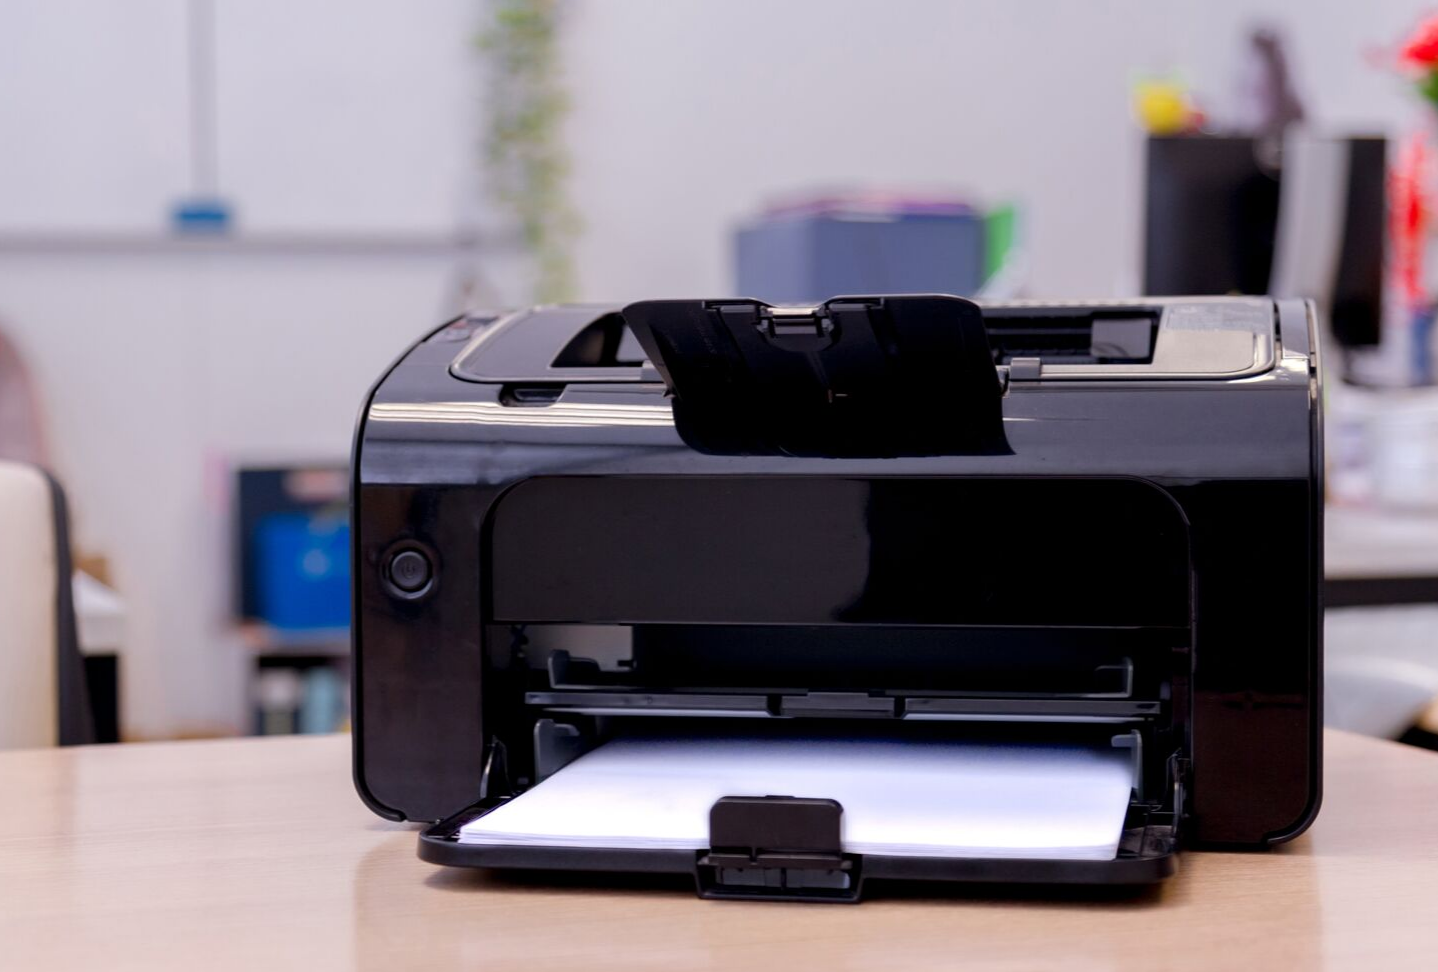 Laser printer that is not printing